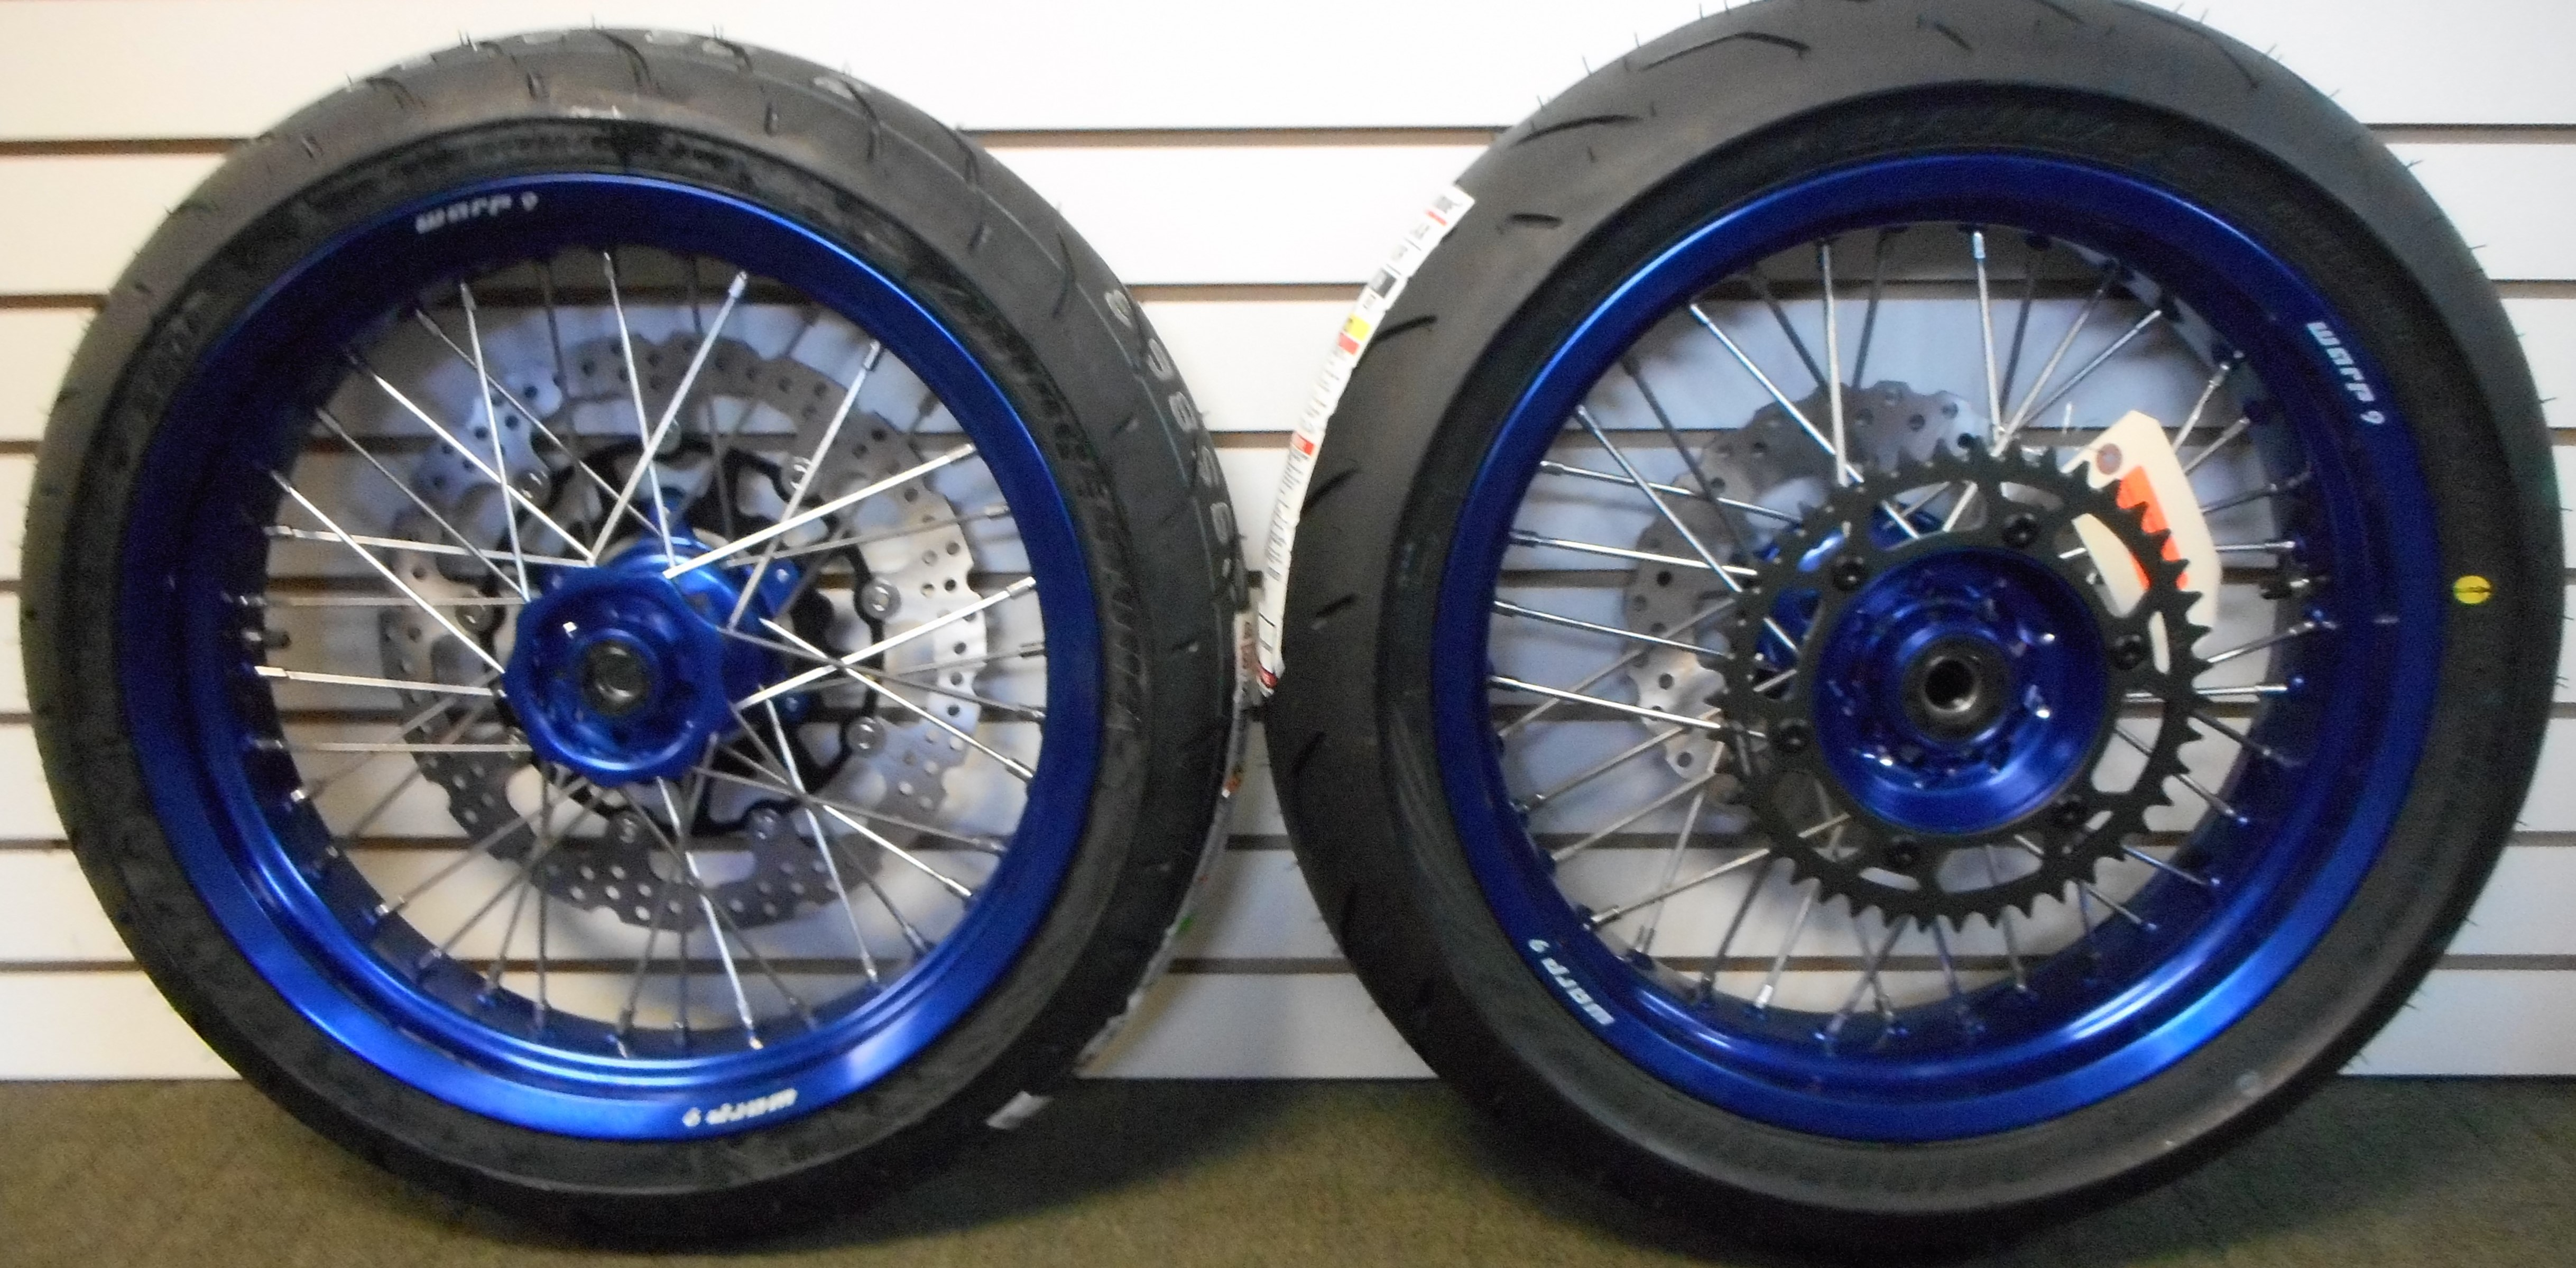 Marchesini Wheels for YZ450F/WR450F | Panjo